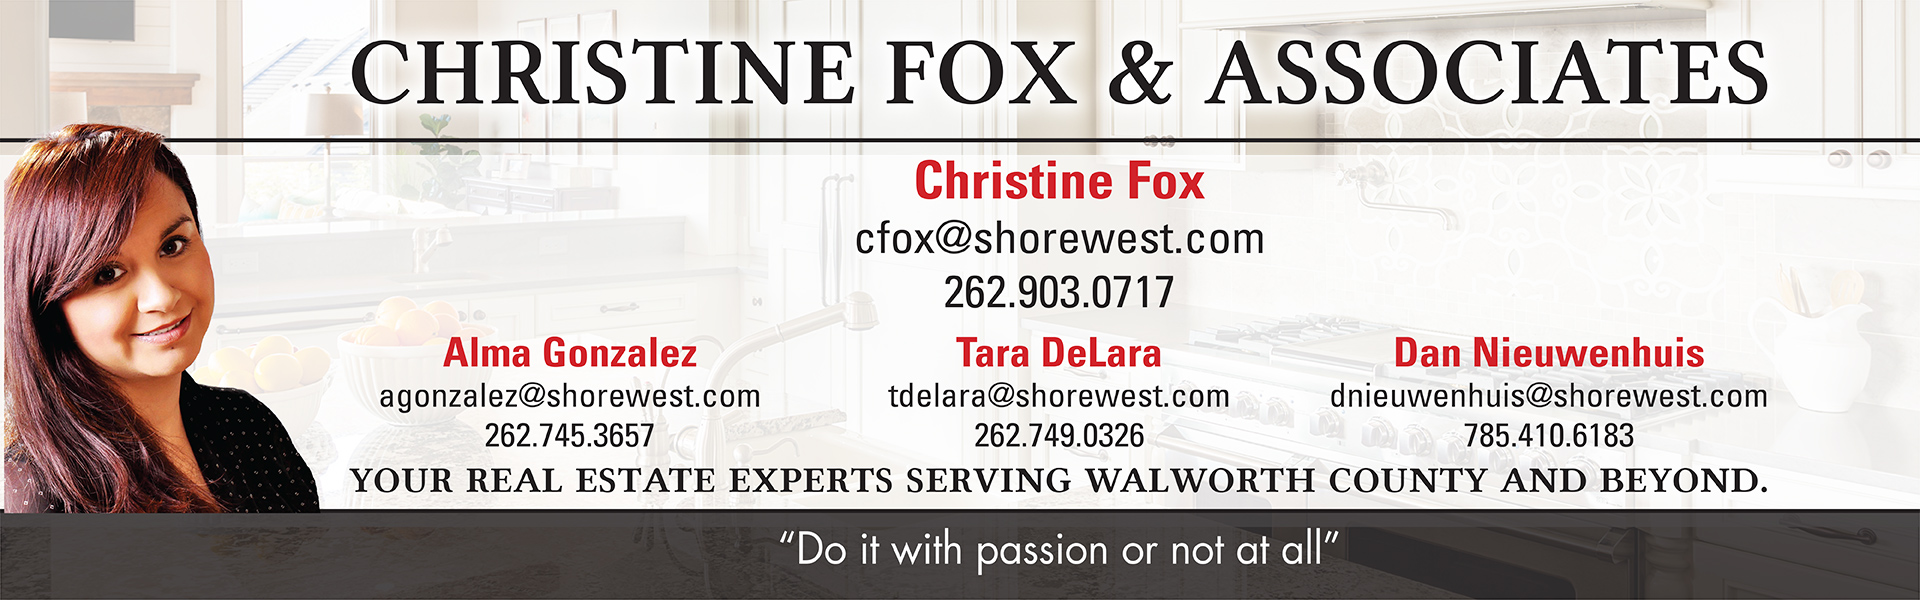 Christine Fox and Associates